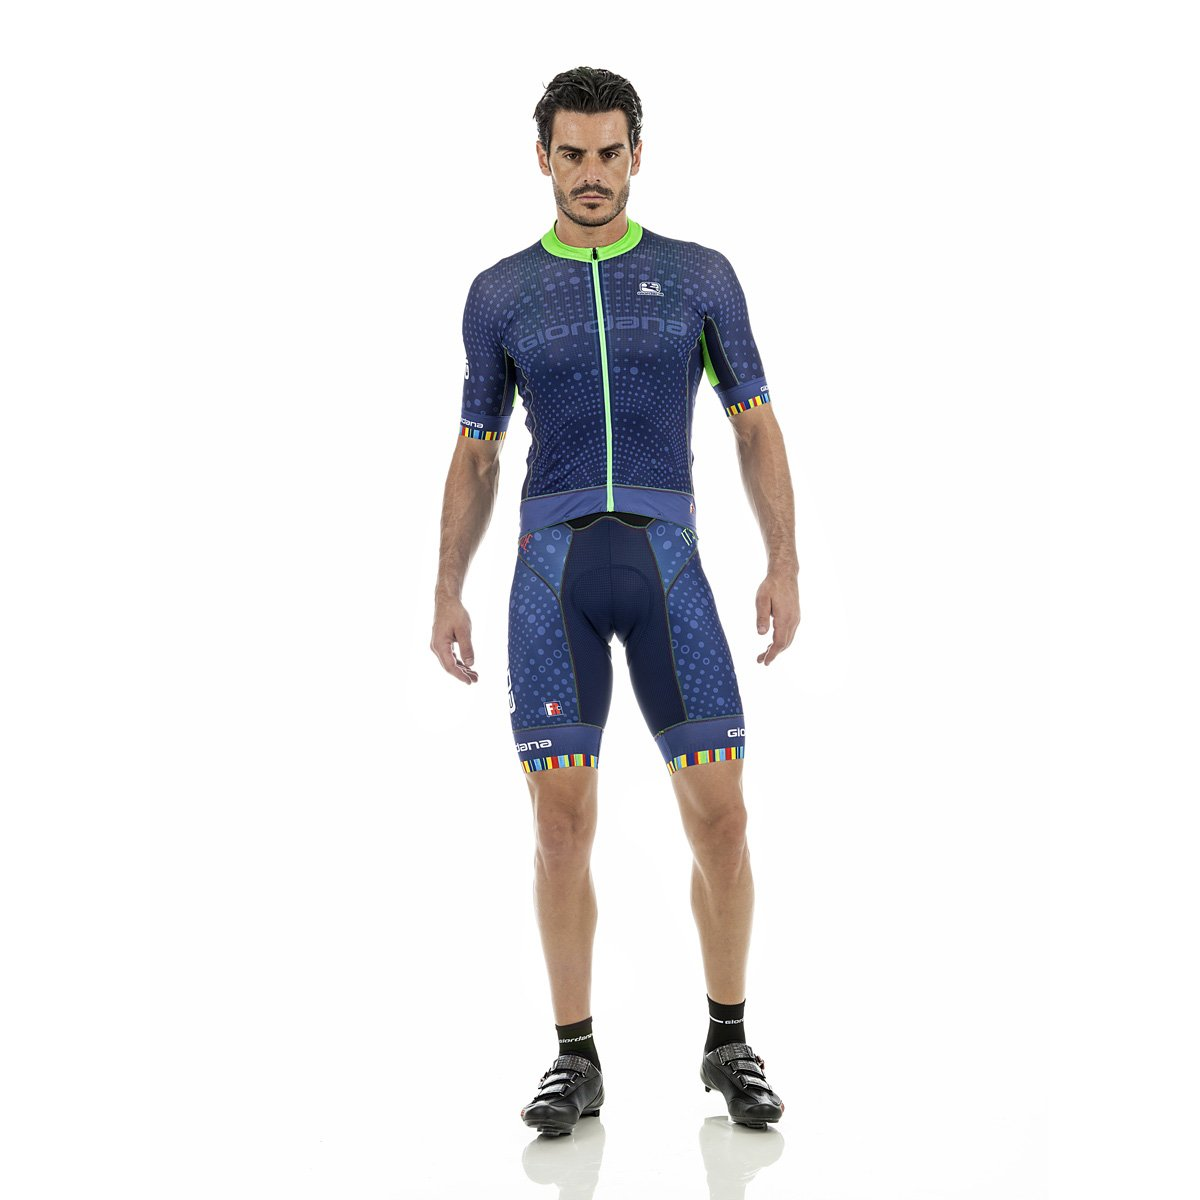 78f016777 Amazon.com   Giordana Mens Polaris Moda FRC Pro Short Sleeve Cycling Jersey  - GICS17-SSJY-FRCP-POLA   Sports   Outdoors